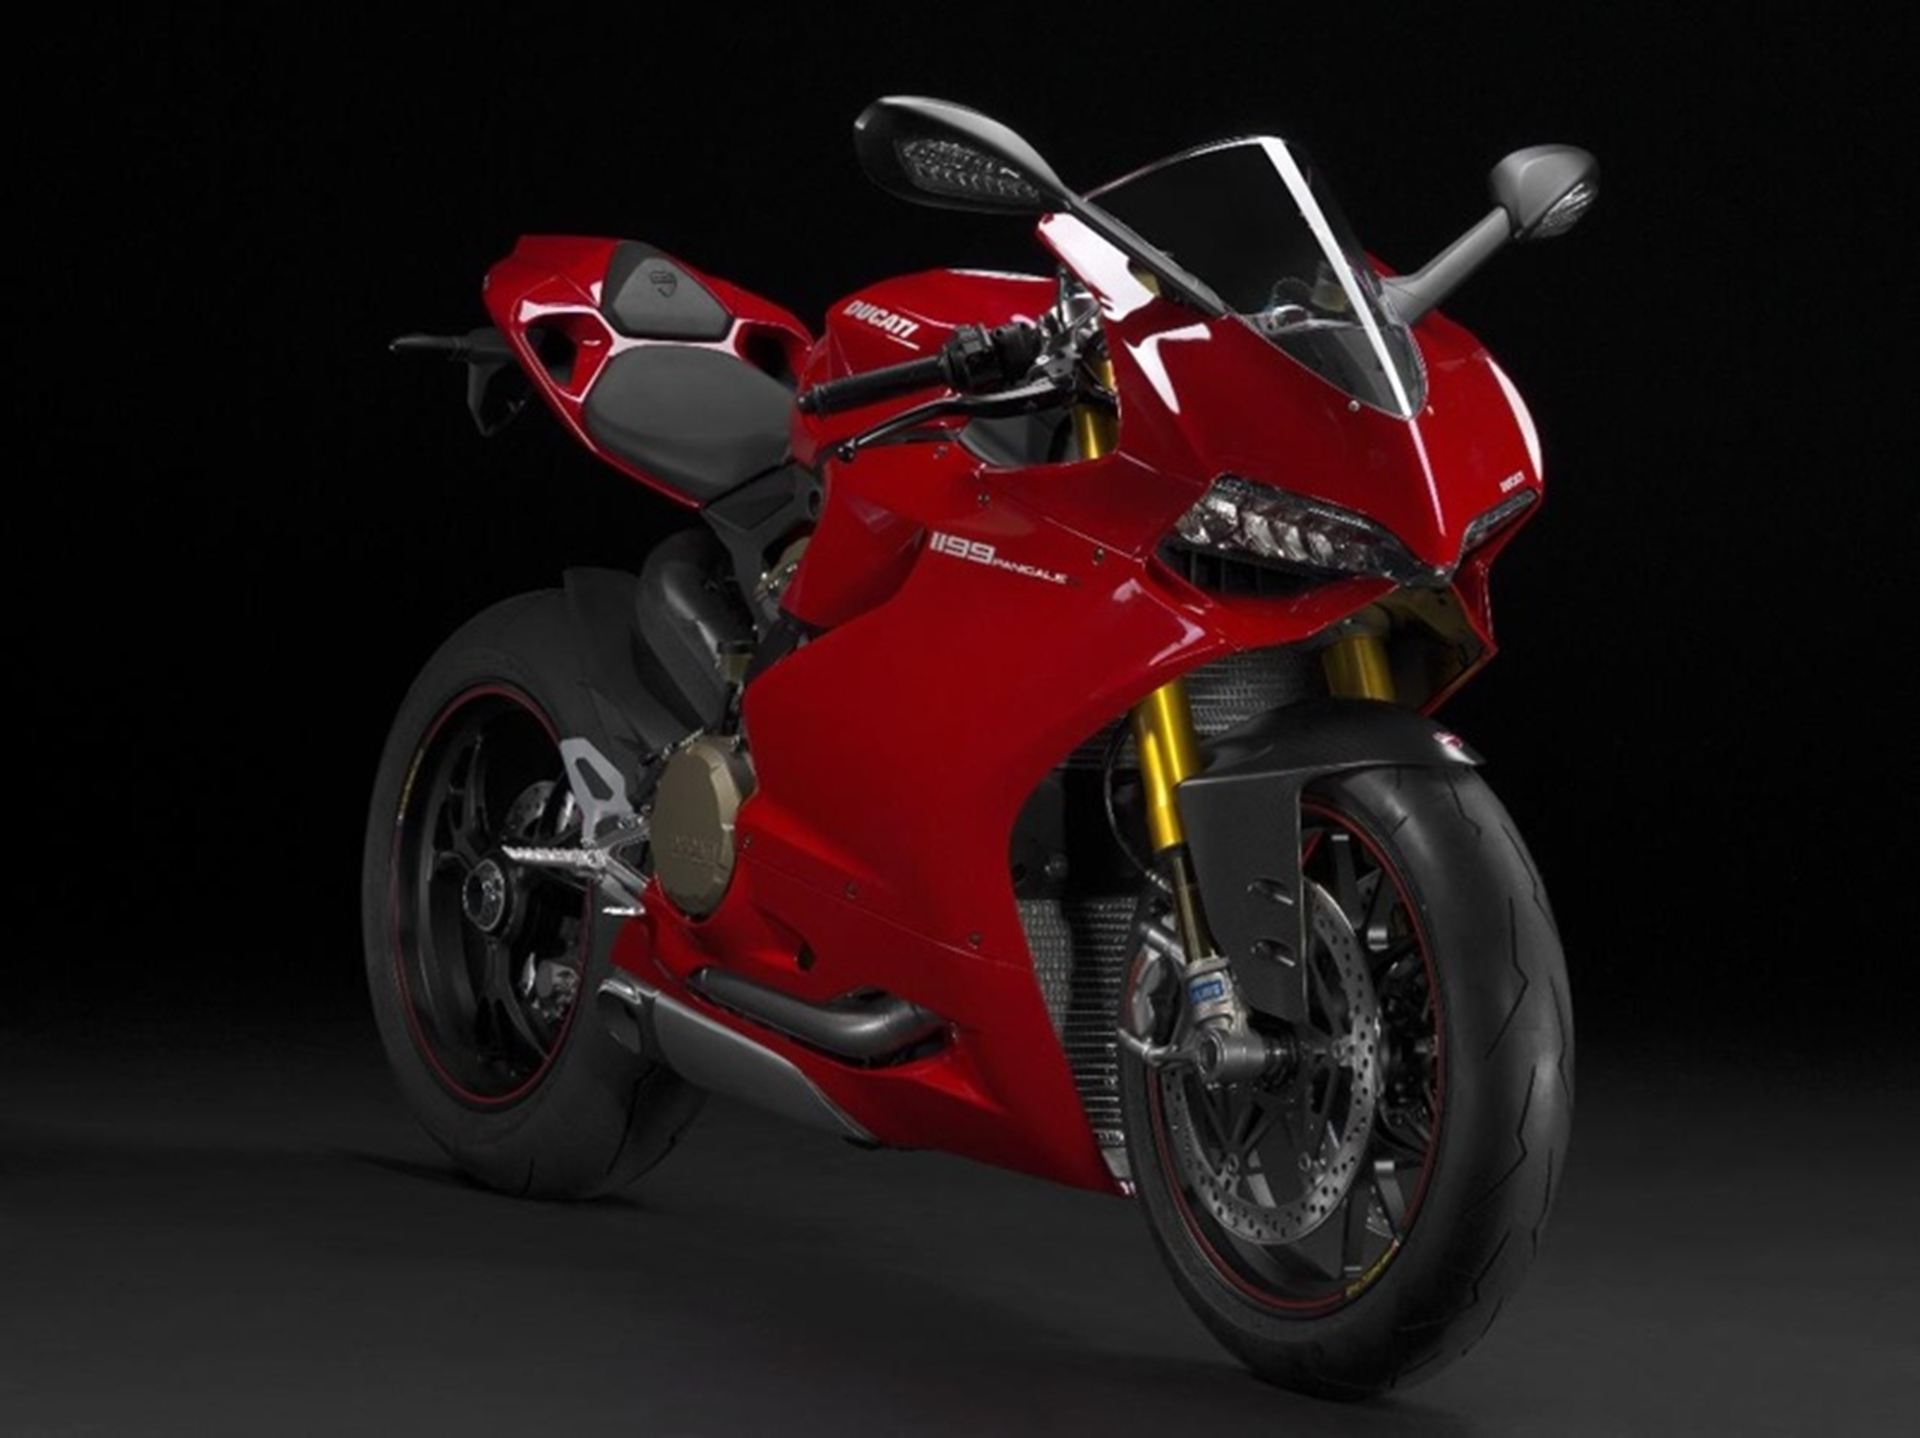 1199 Panigale S 2012